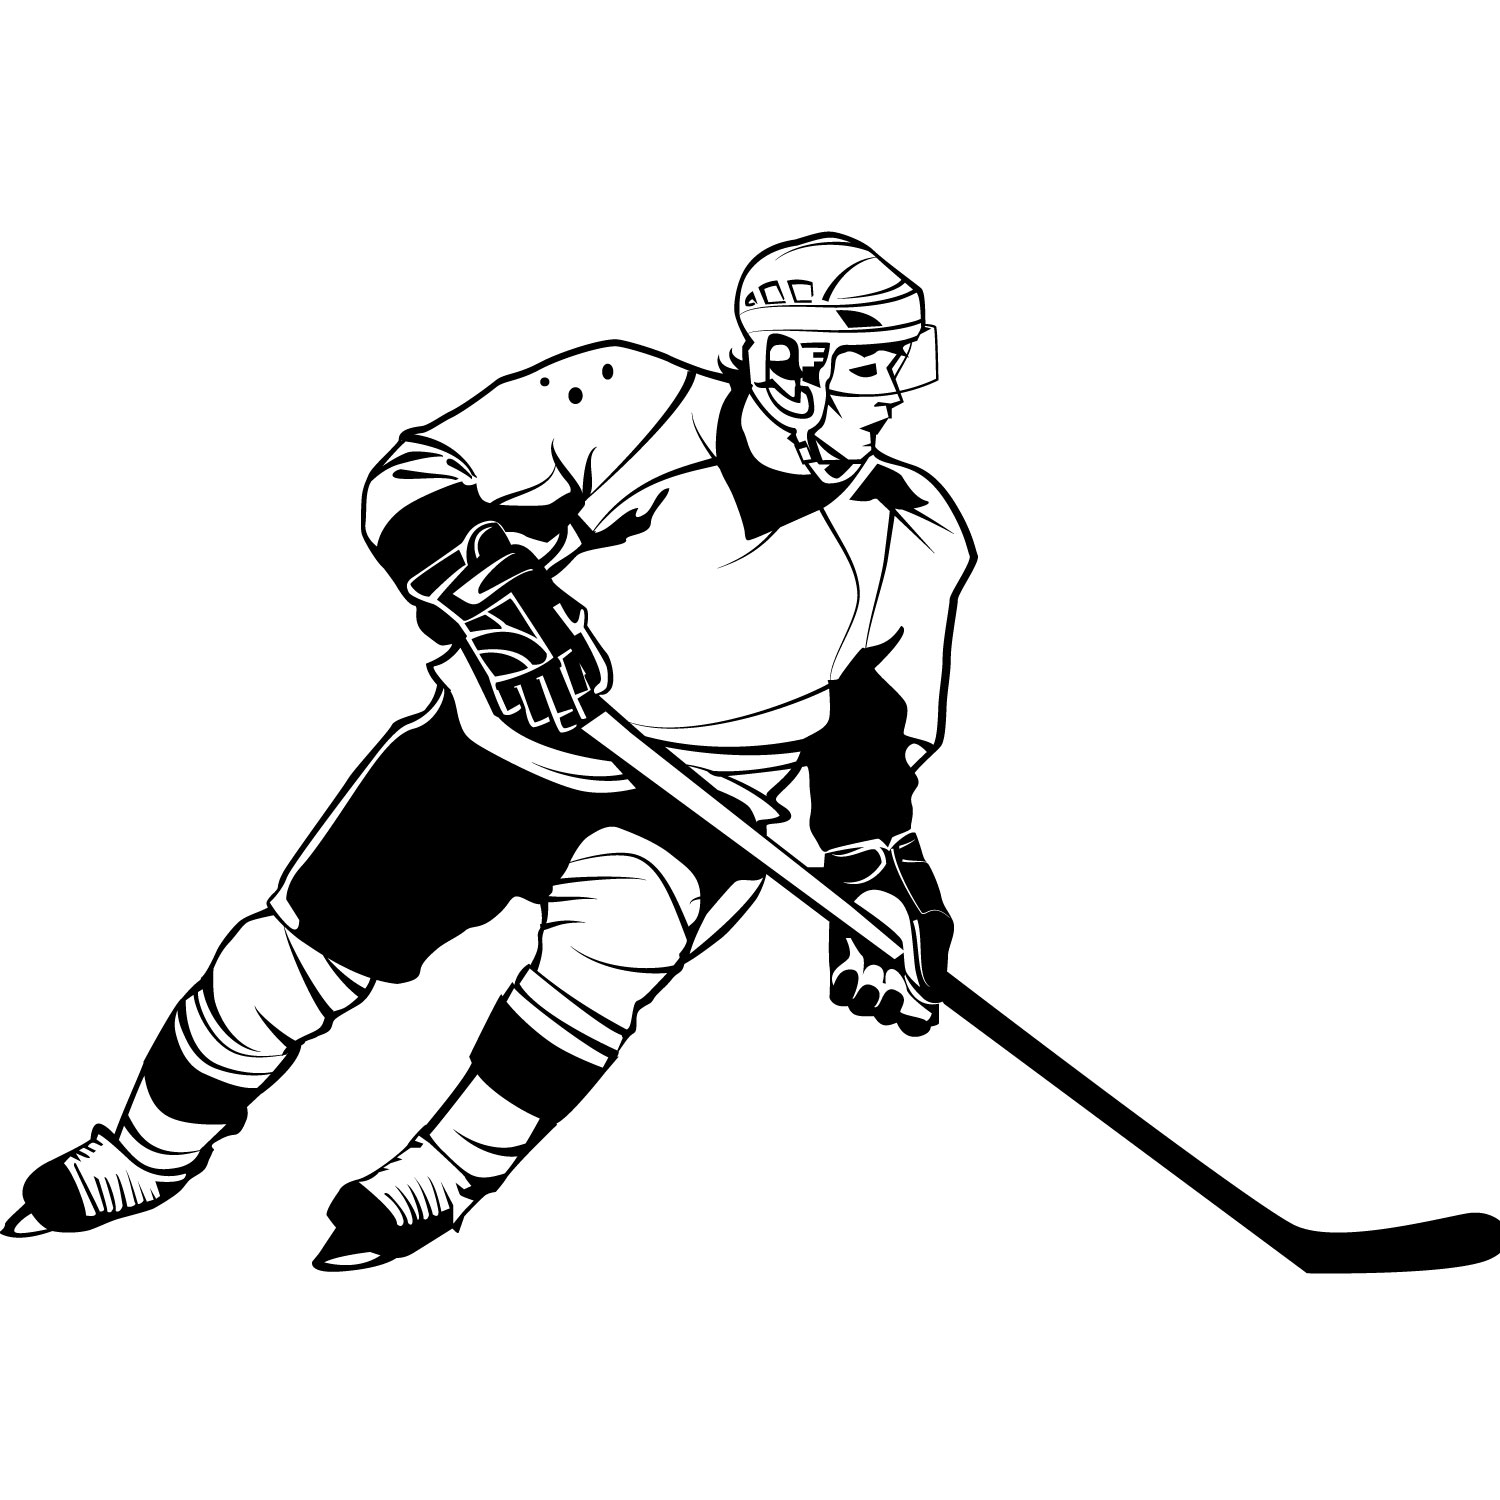 hockey player clipart cliparts co Ice Skating Cartoon Clip Art Vintage Ice Skating Clip Art